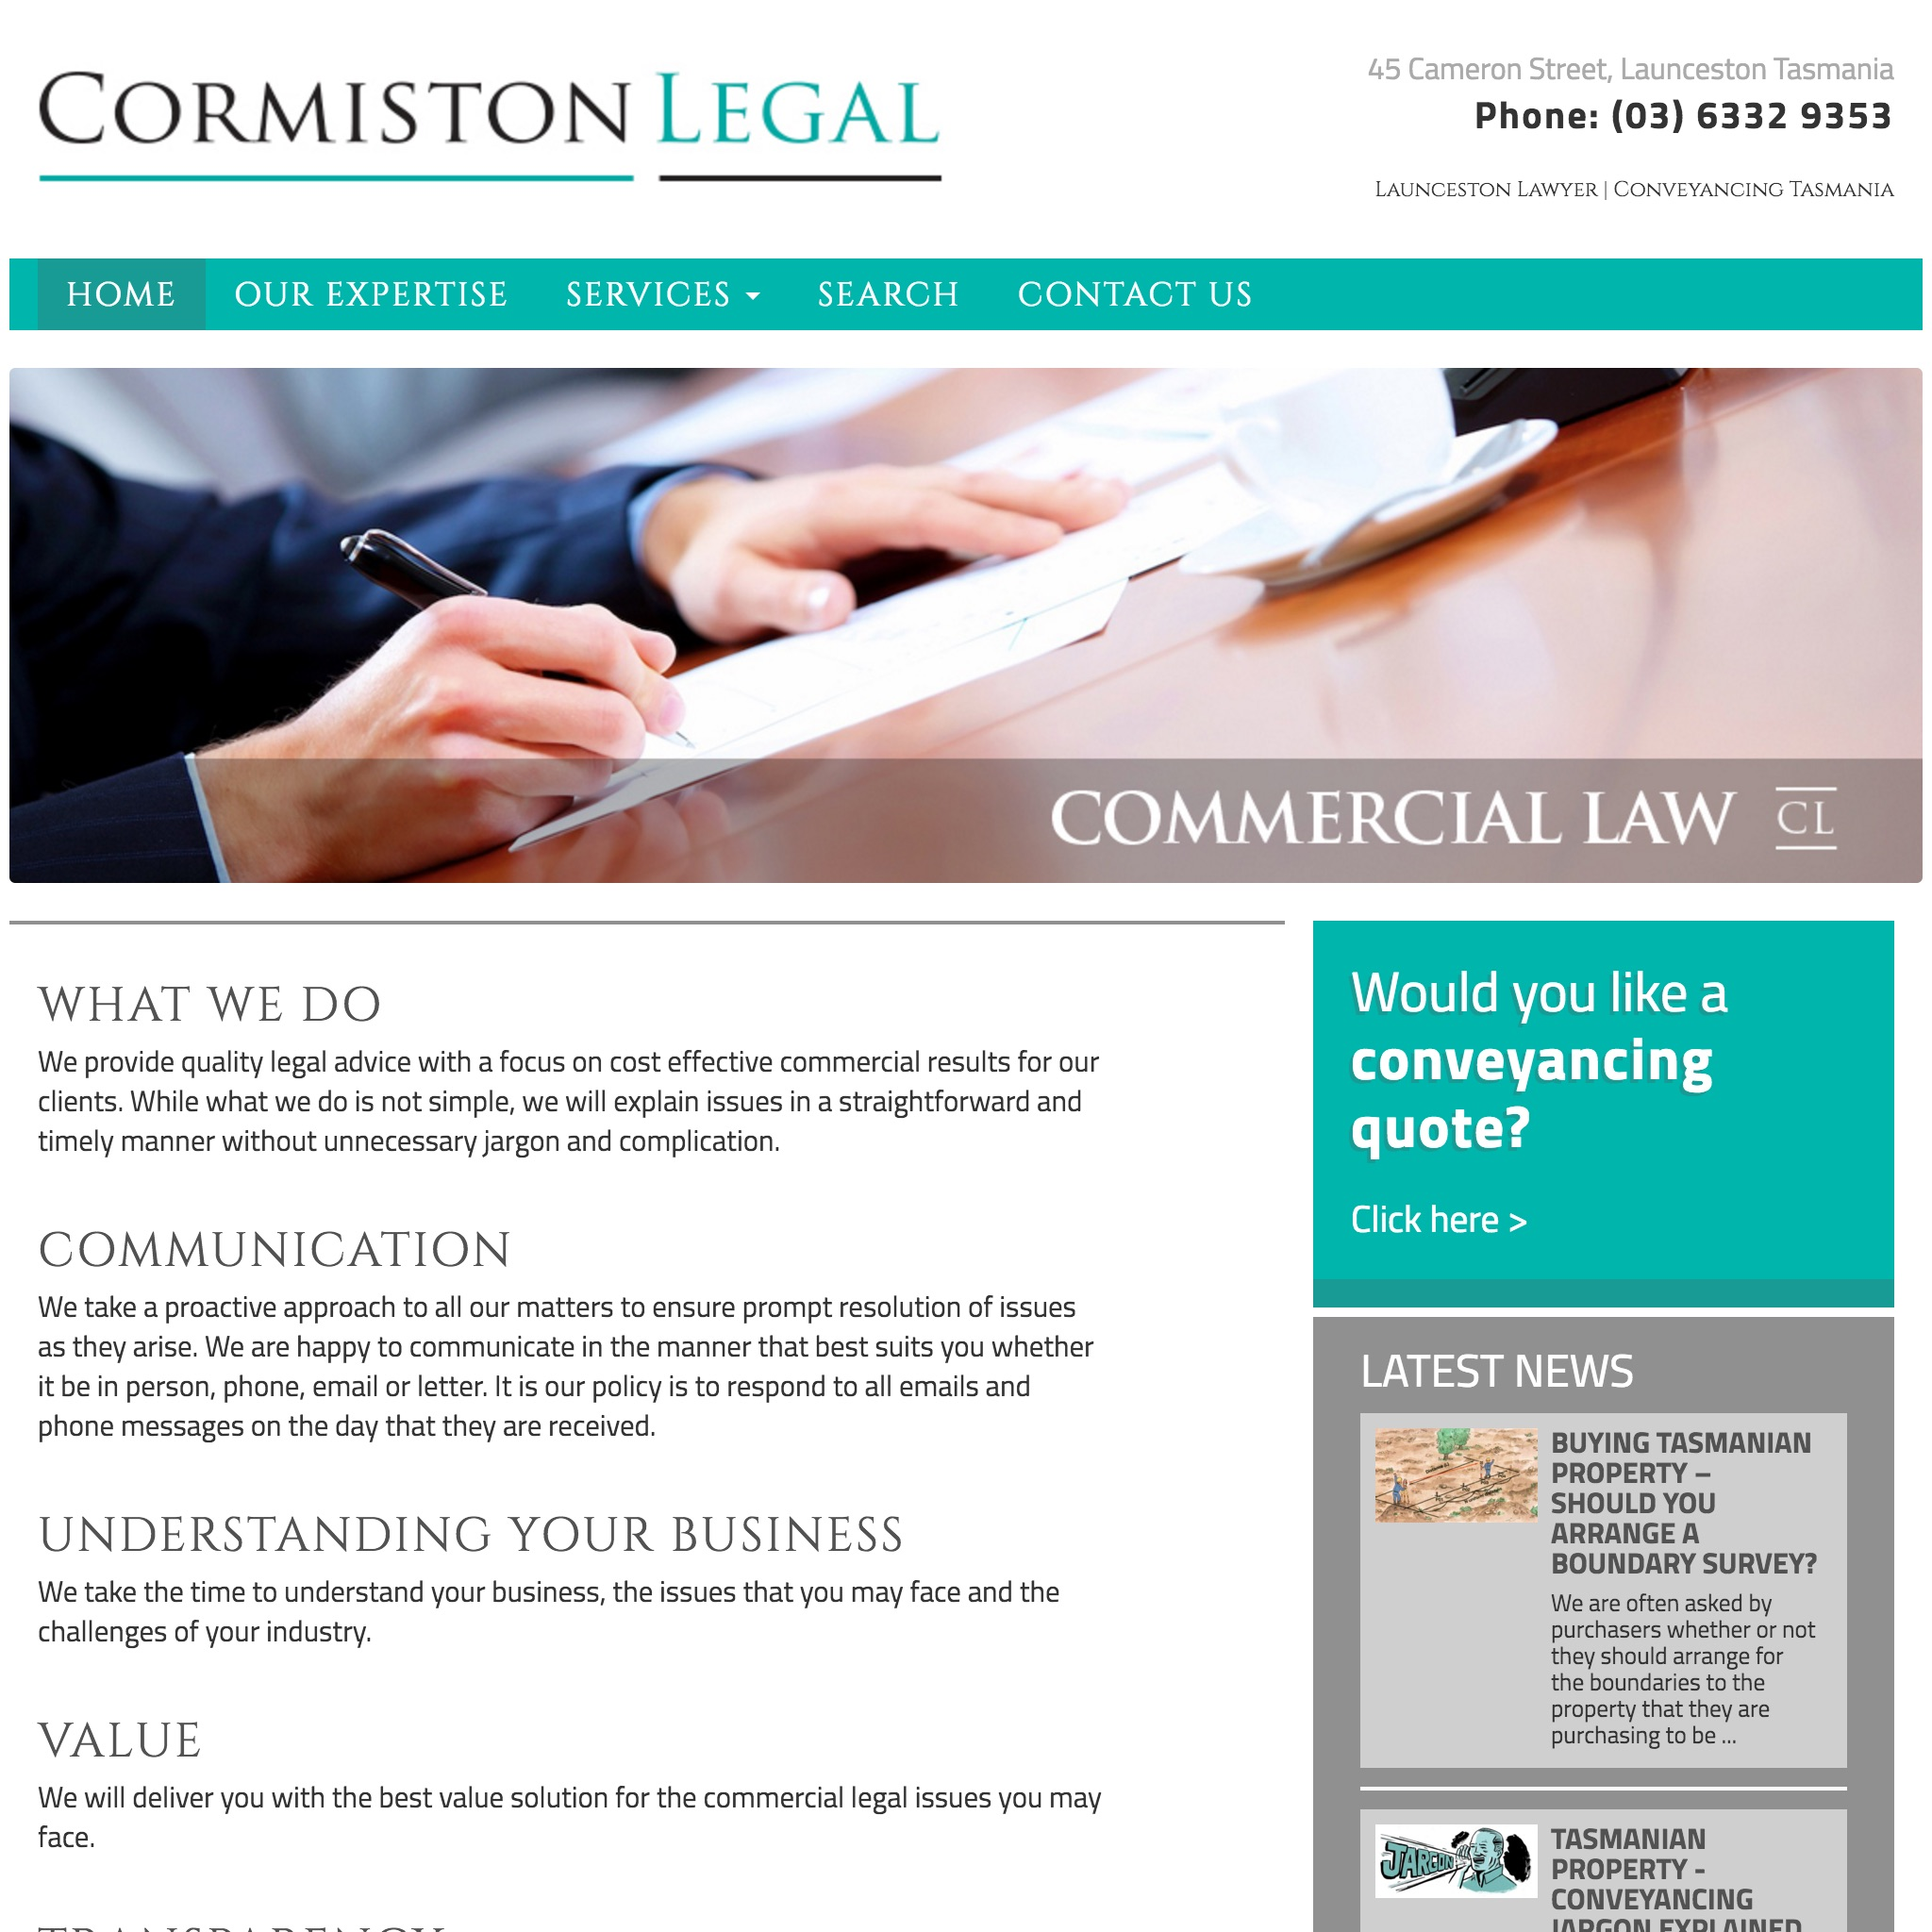 Cormiston Legal website